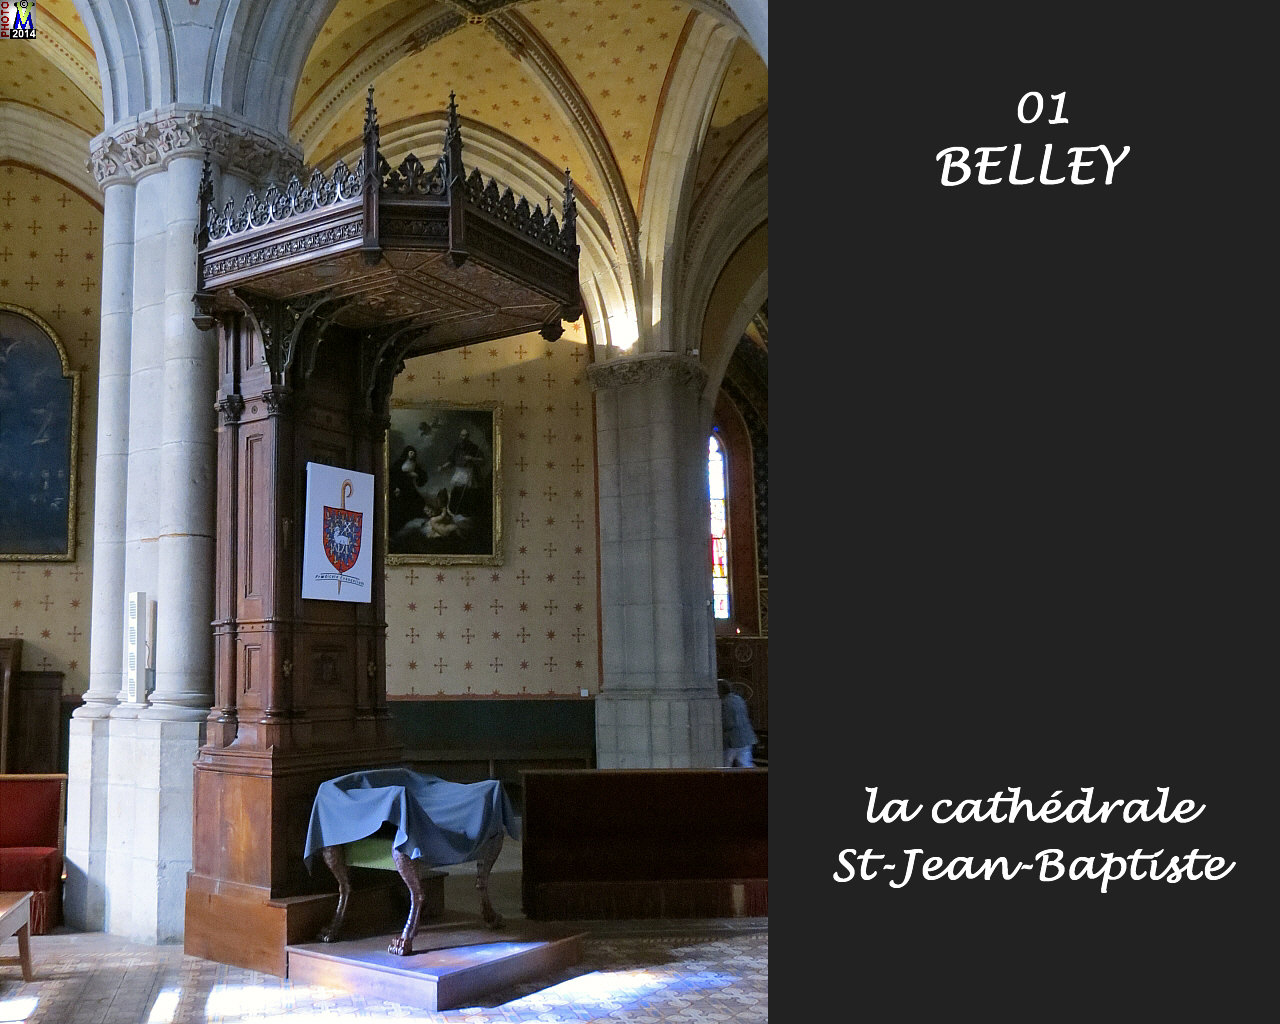 01BELLEY_cathedrale_254.jpg